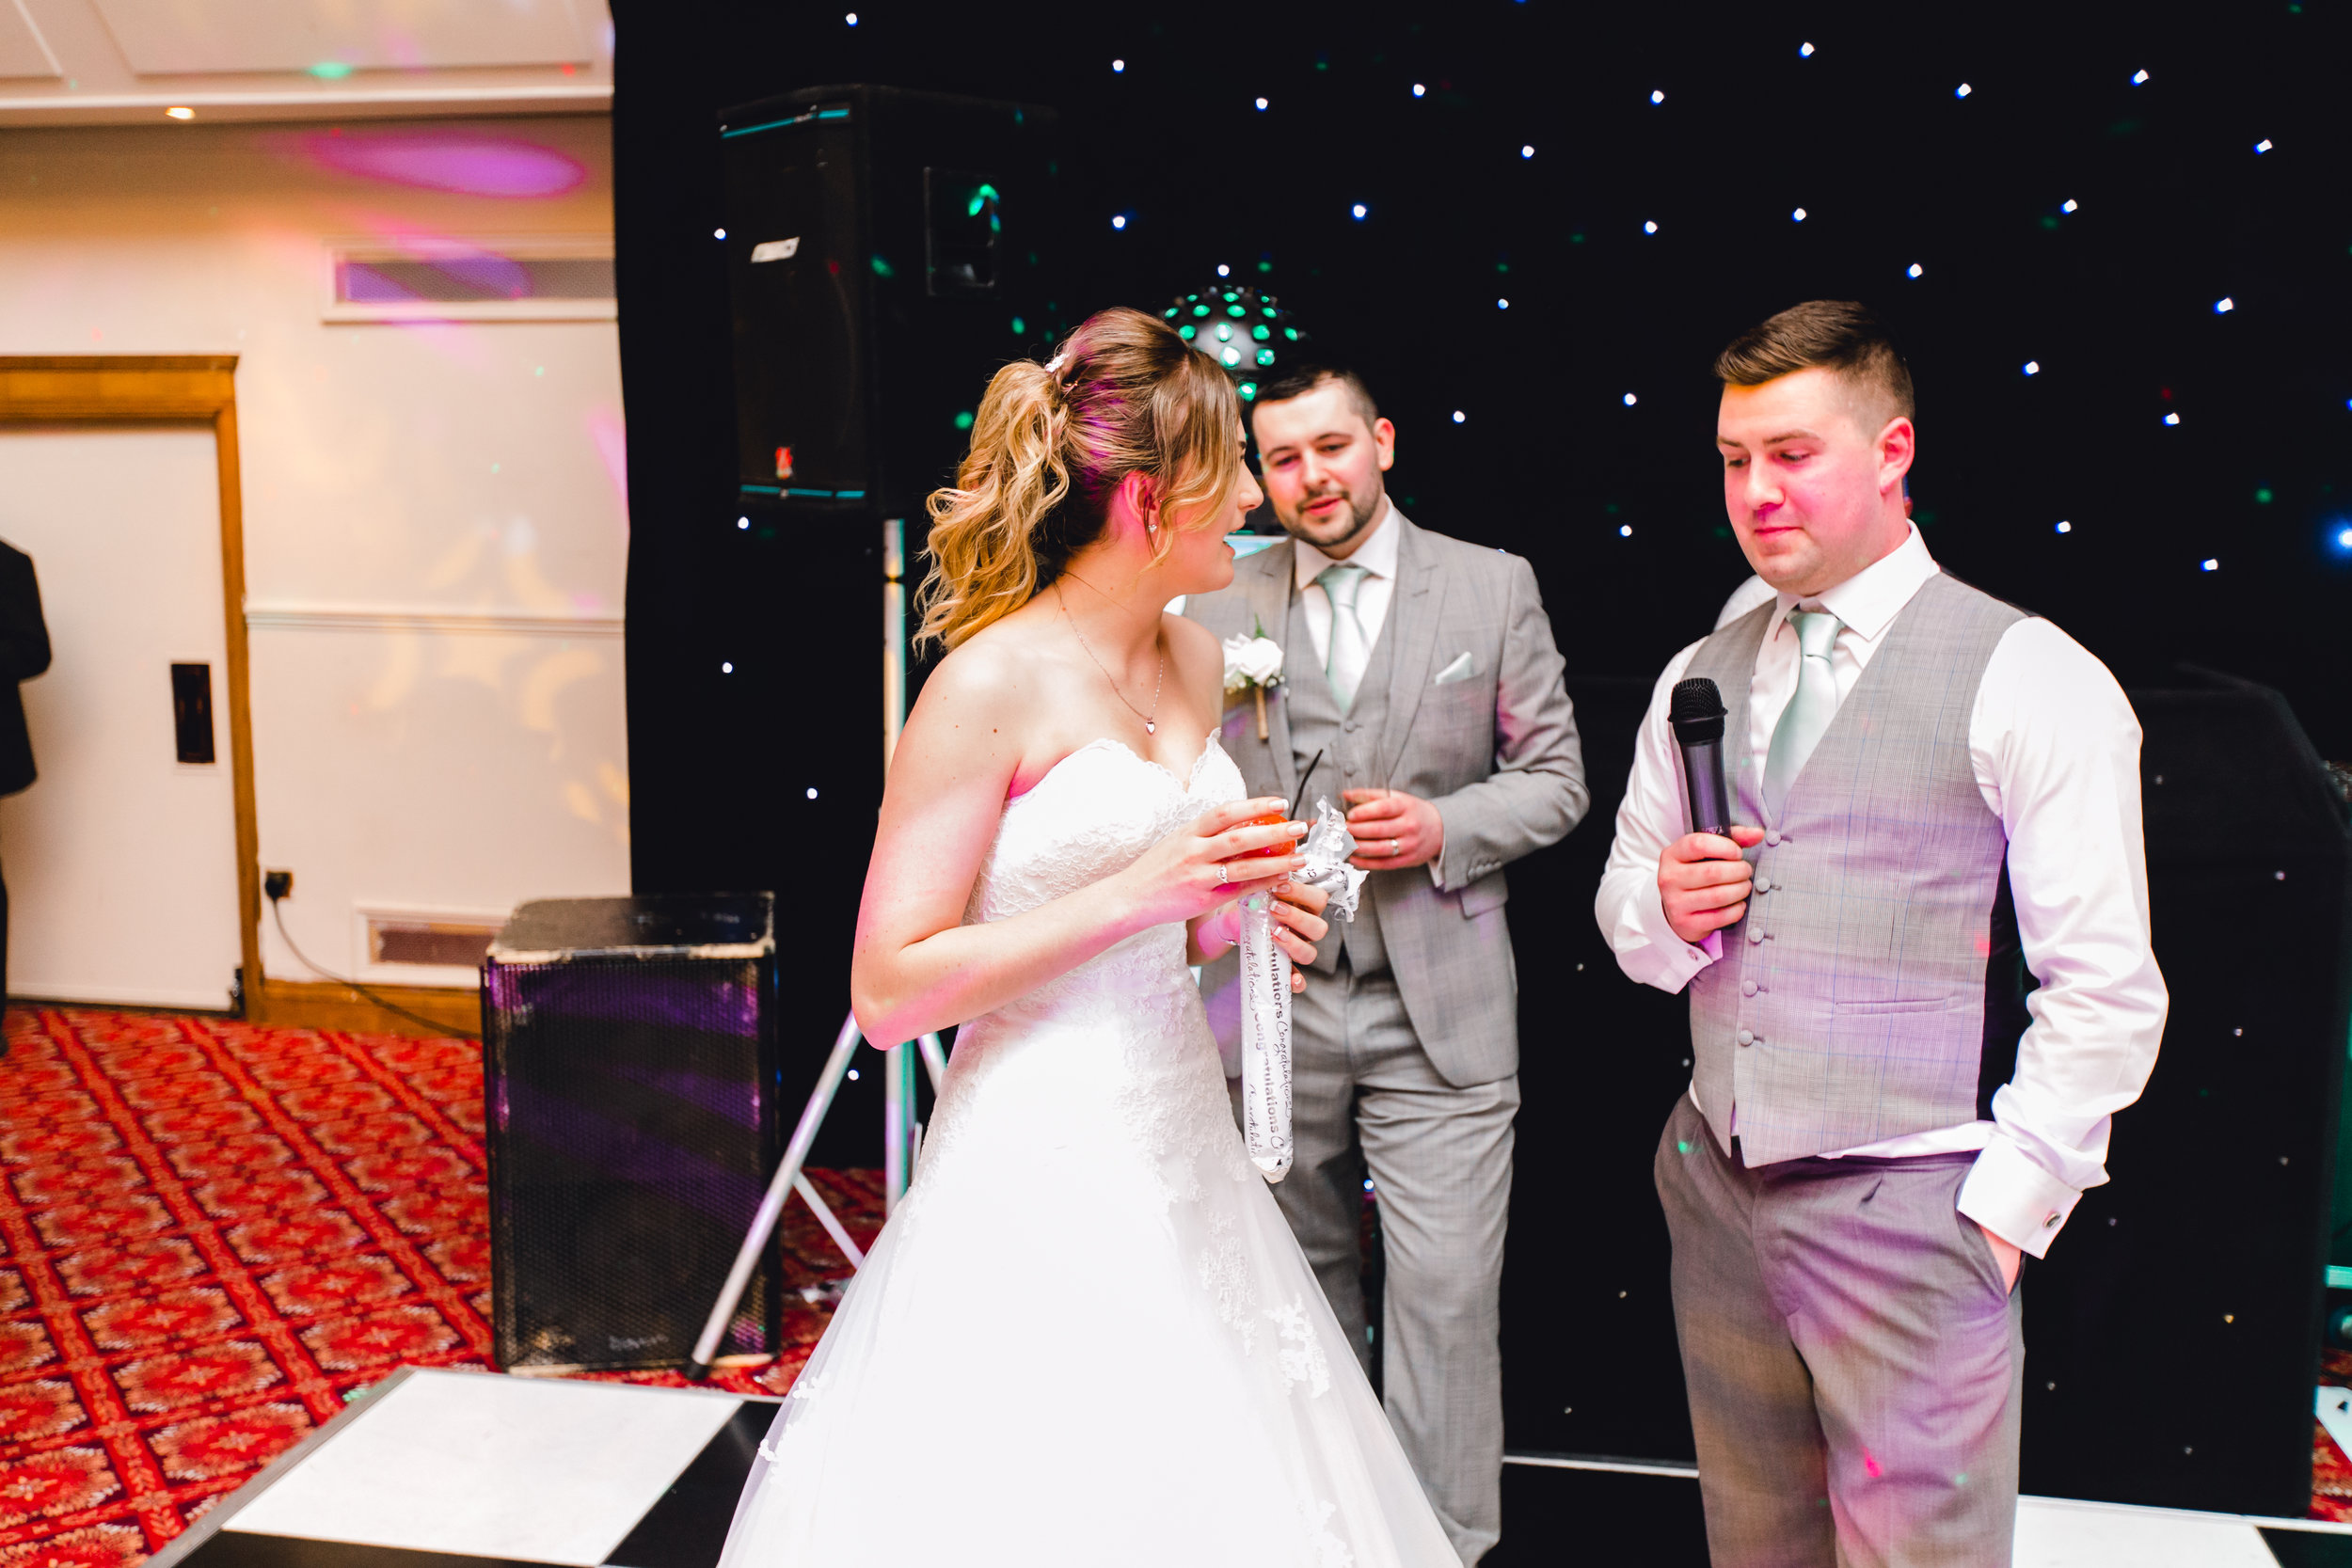 Best man plays funny prank on the bride and groom